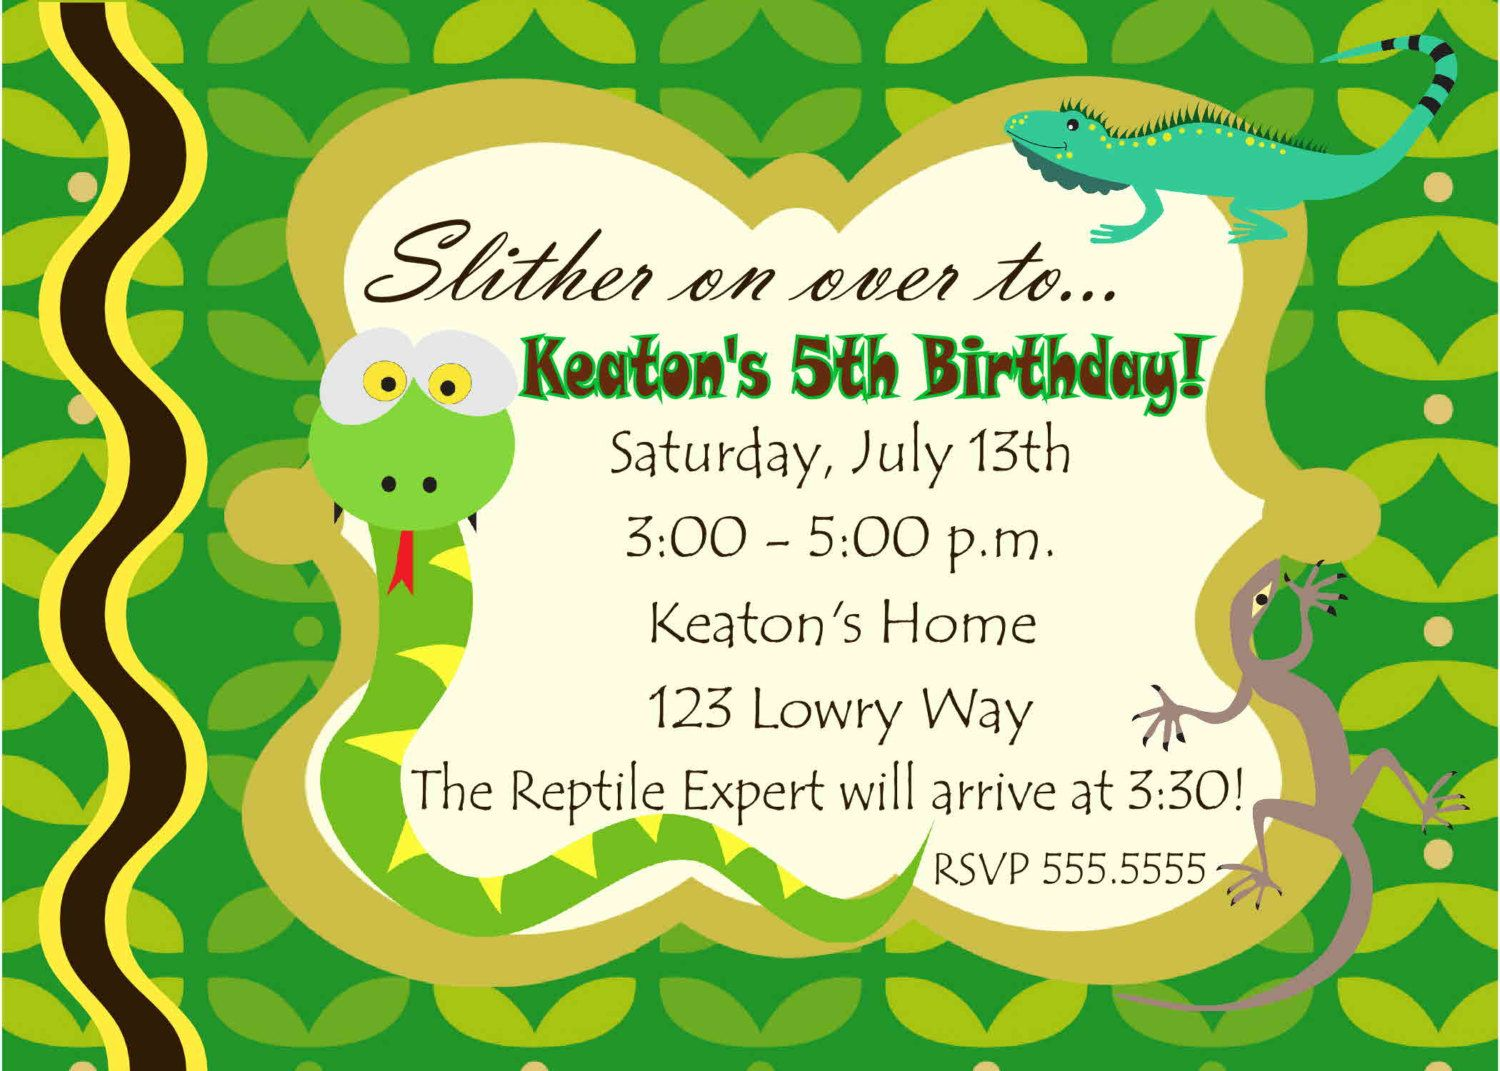 Digital Reptile Snake Photo Birthday Party Invitation You Print ...